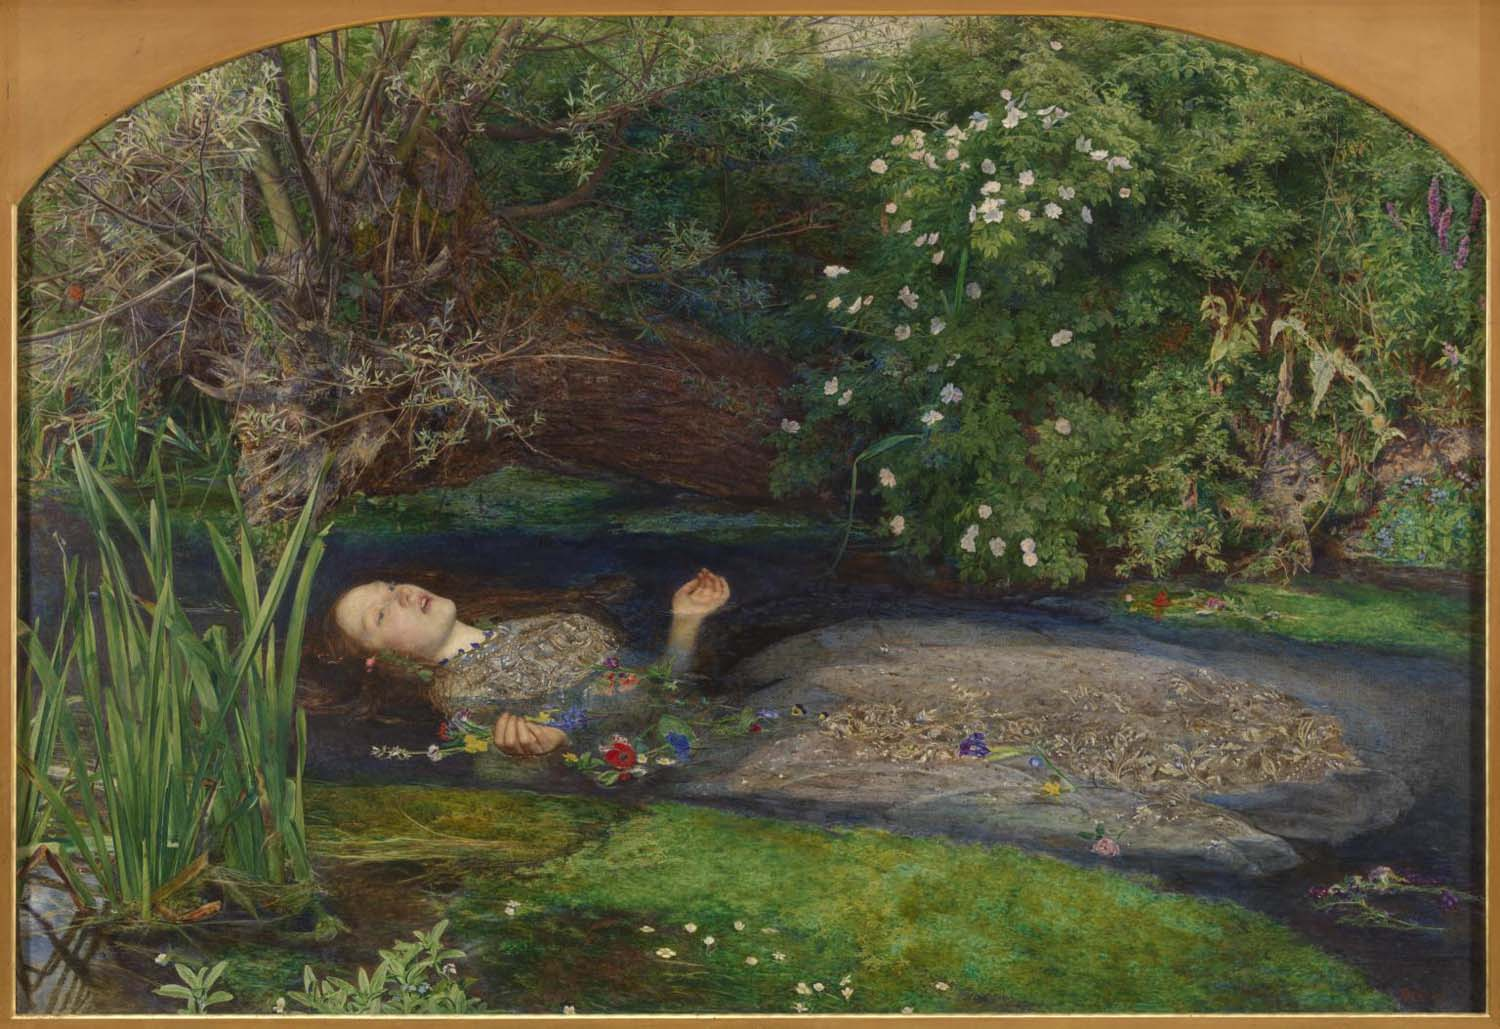 a painting of a woman lying face up in a river bed holding flowers